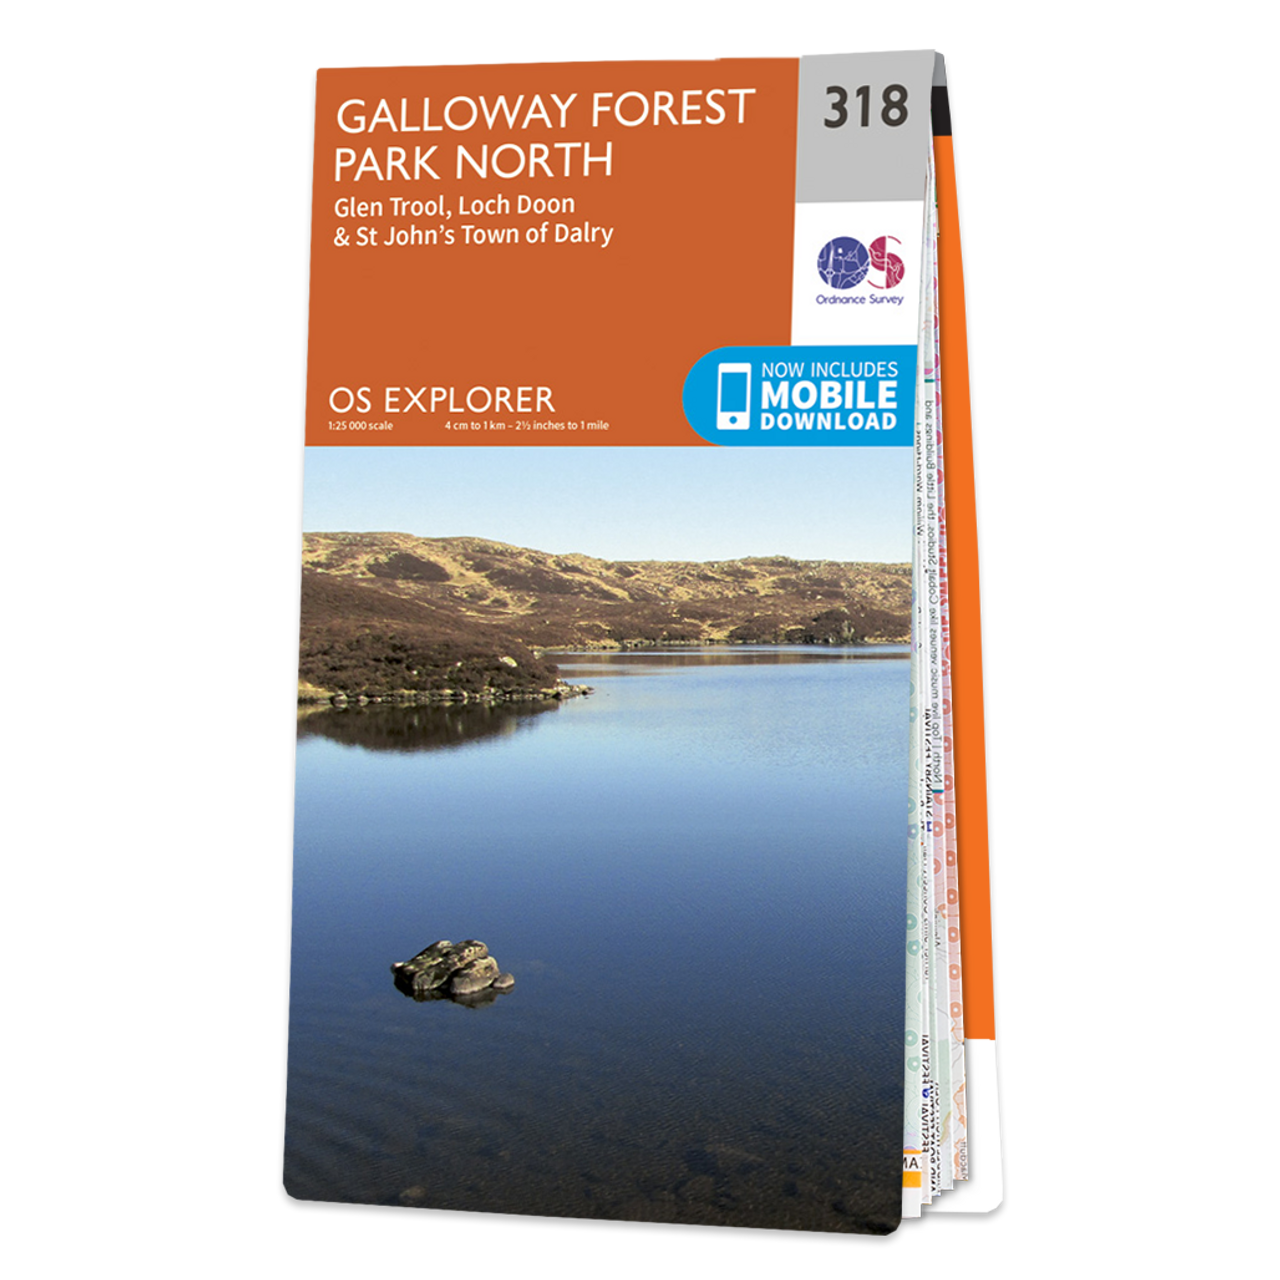 Map Of Galloway Forest Park North